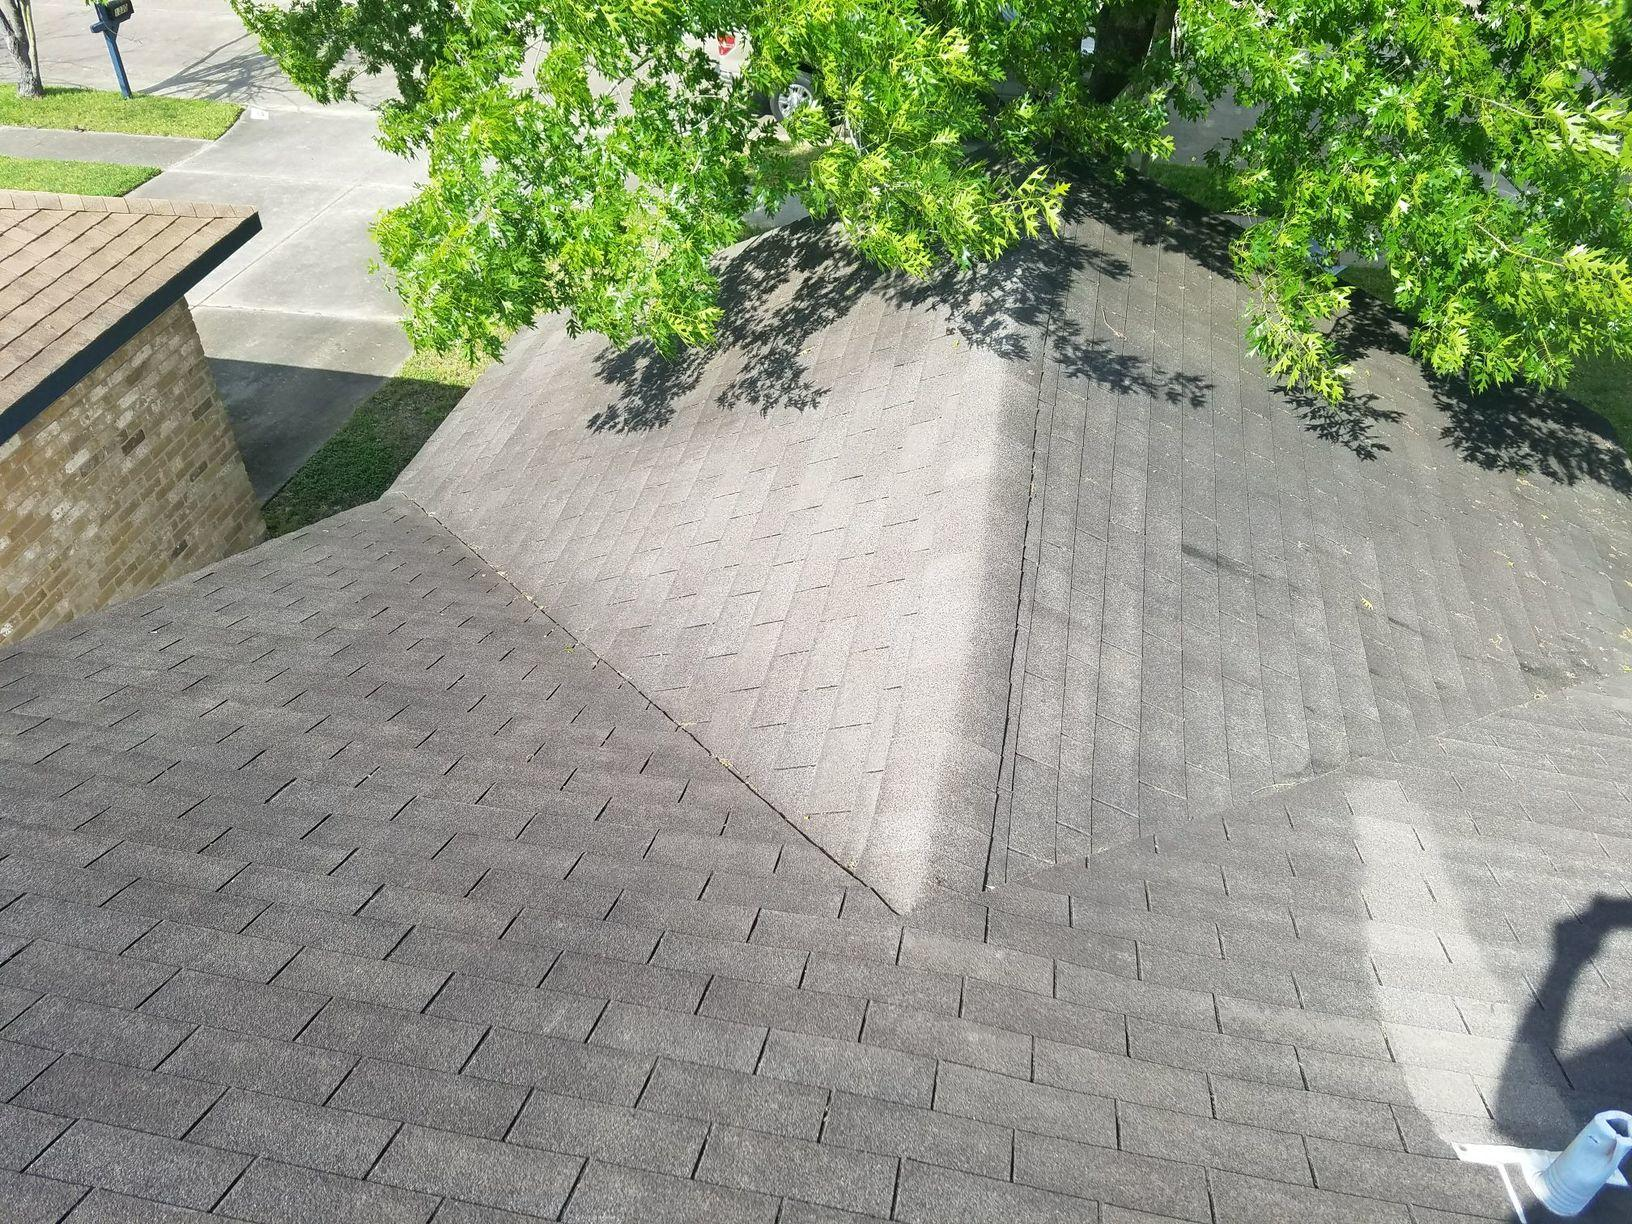 Roof Damage from Trees